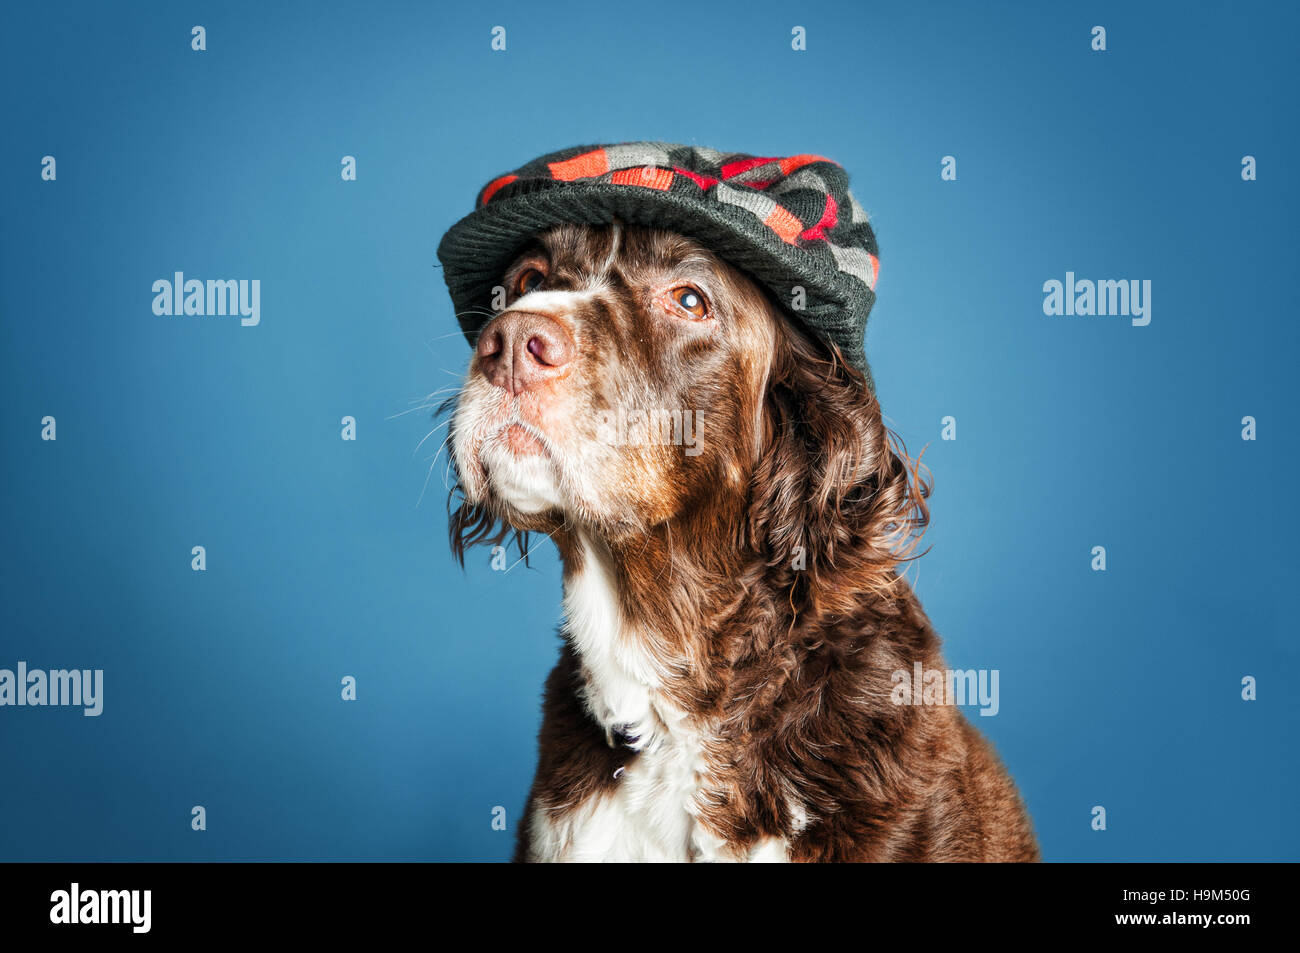 english springer spaniel looking distinguished in a checkered cap - Stock Image